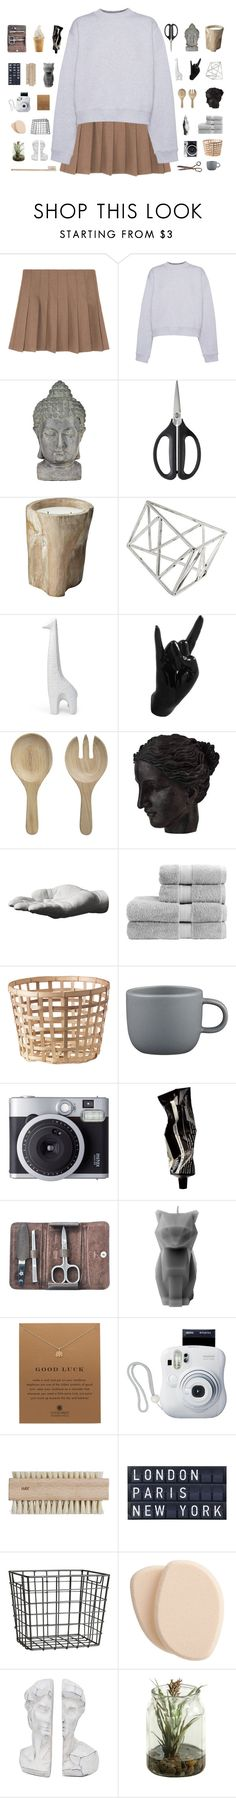 """""""f a l l l"""" by abbeyso ❤ liked on Polyvore featuring Acne Studios, Universal Lighting and Decor, OXO, Topshop, Jonathan Adler, Thelermont Hupton, Crate and Barrel, Ren-Wil, Areaware and Christy"""